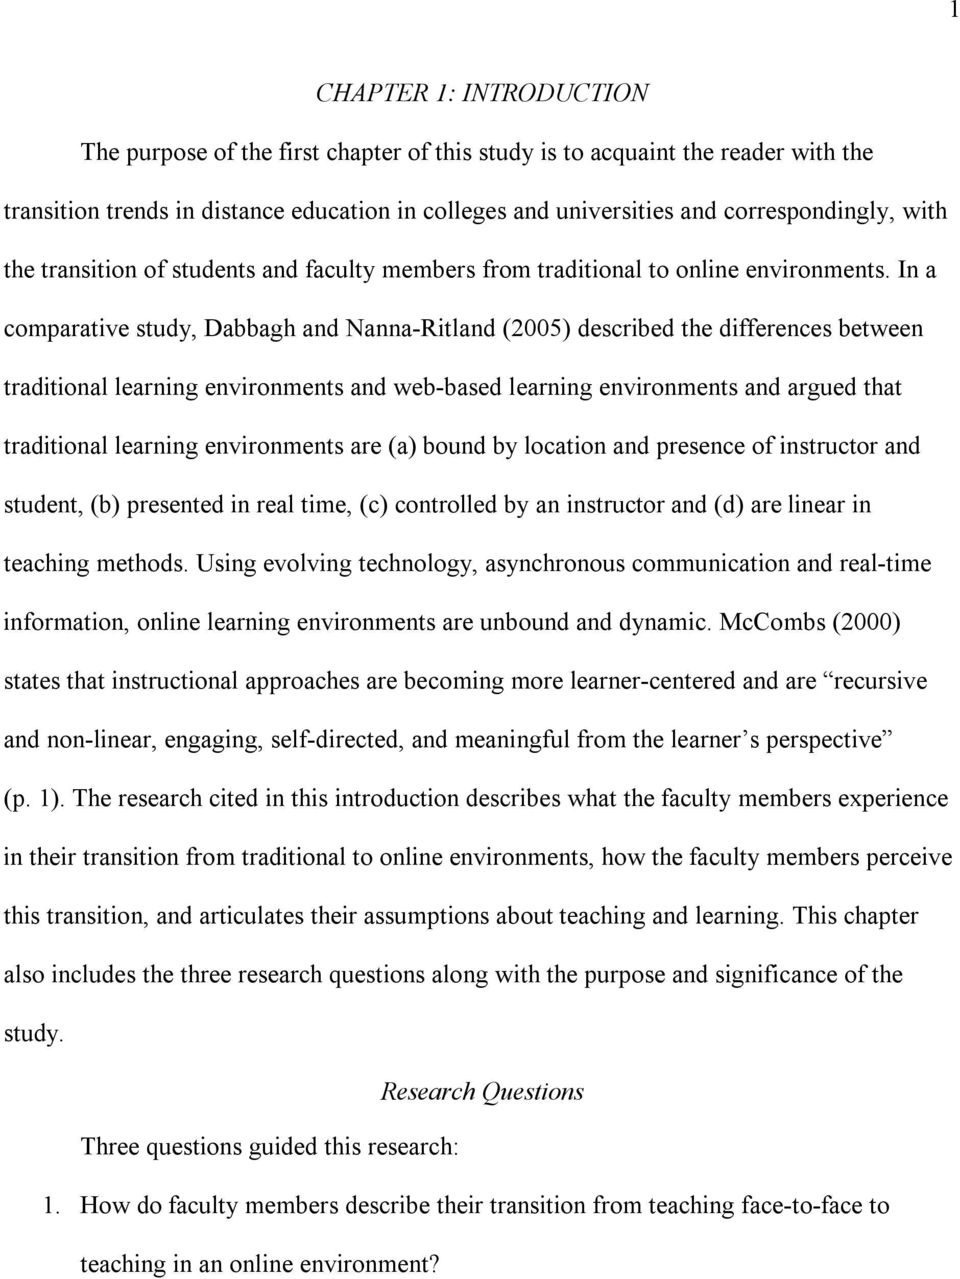 In a comparative study, Dabbagh and Nanna Ritland (2005) described the differences between traditional learning environments and web based learning environments and argued that traditional learning